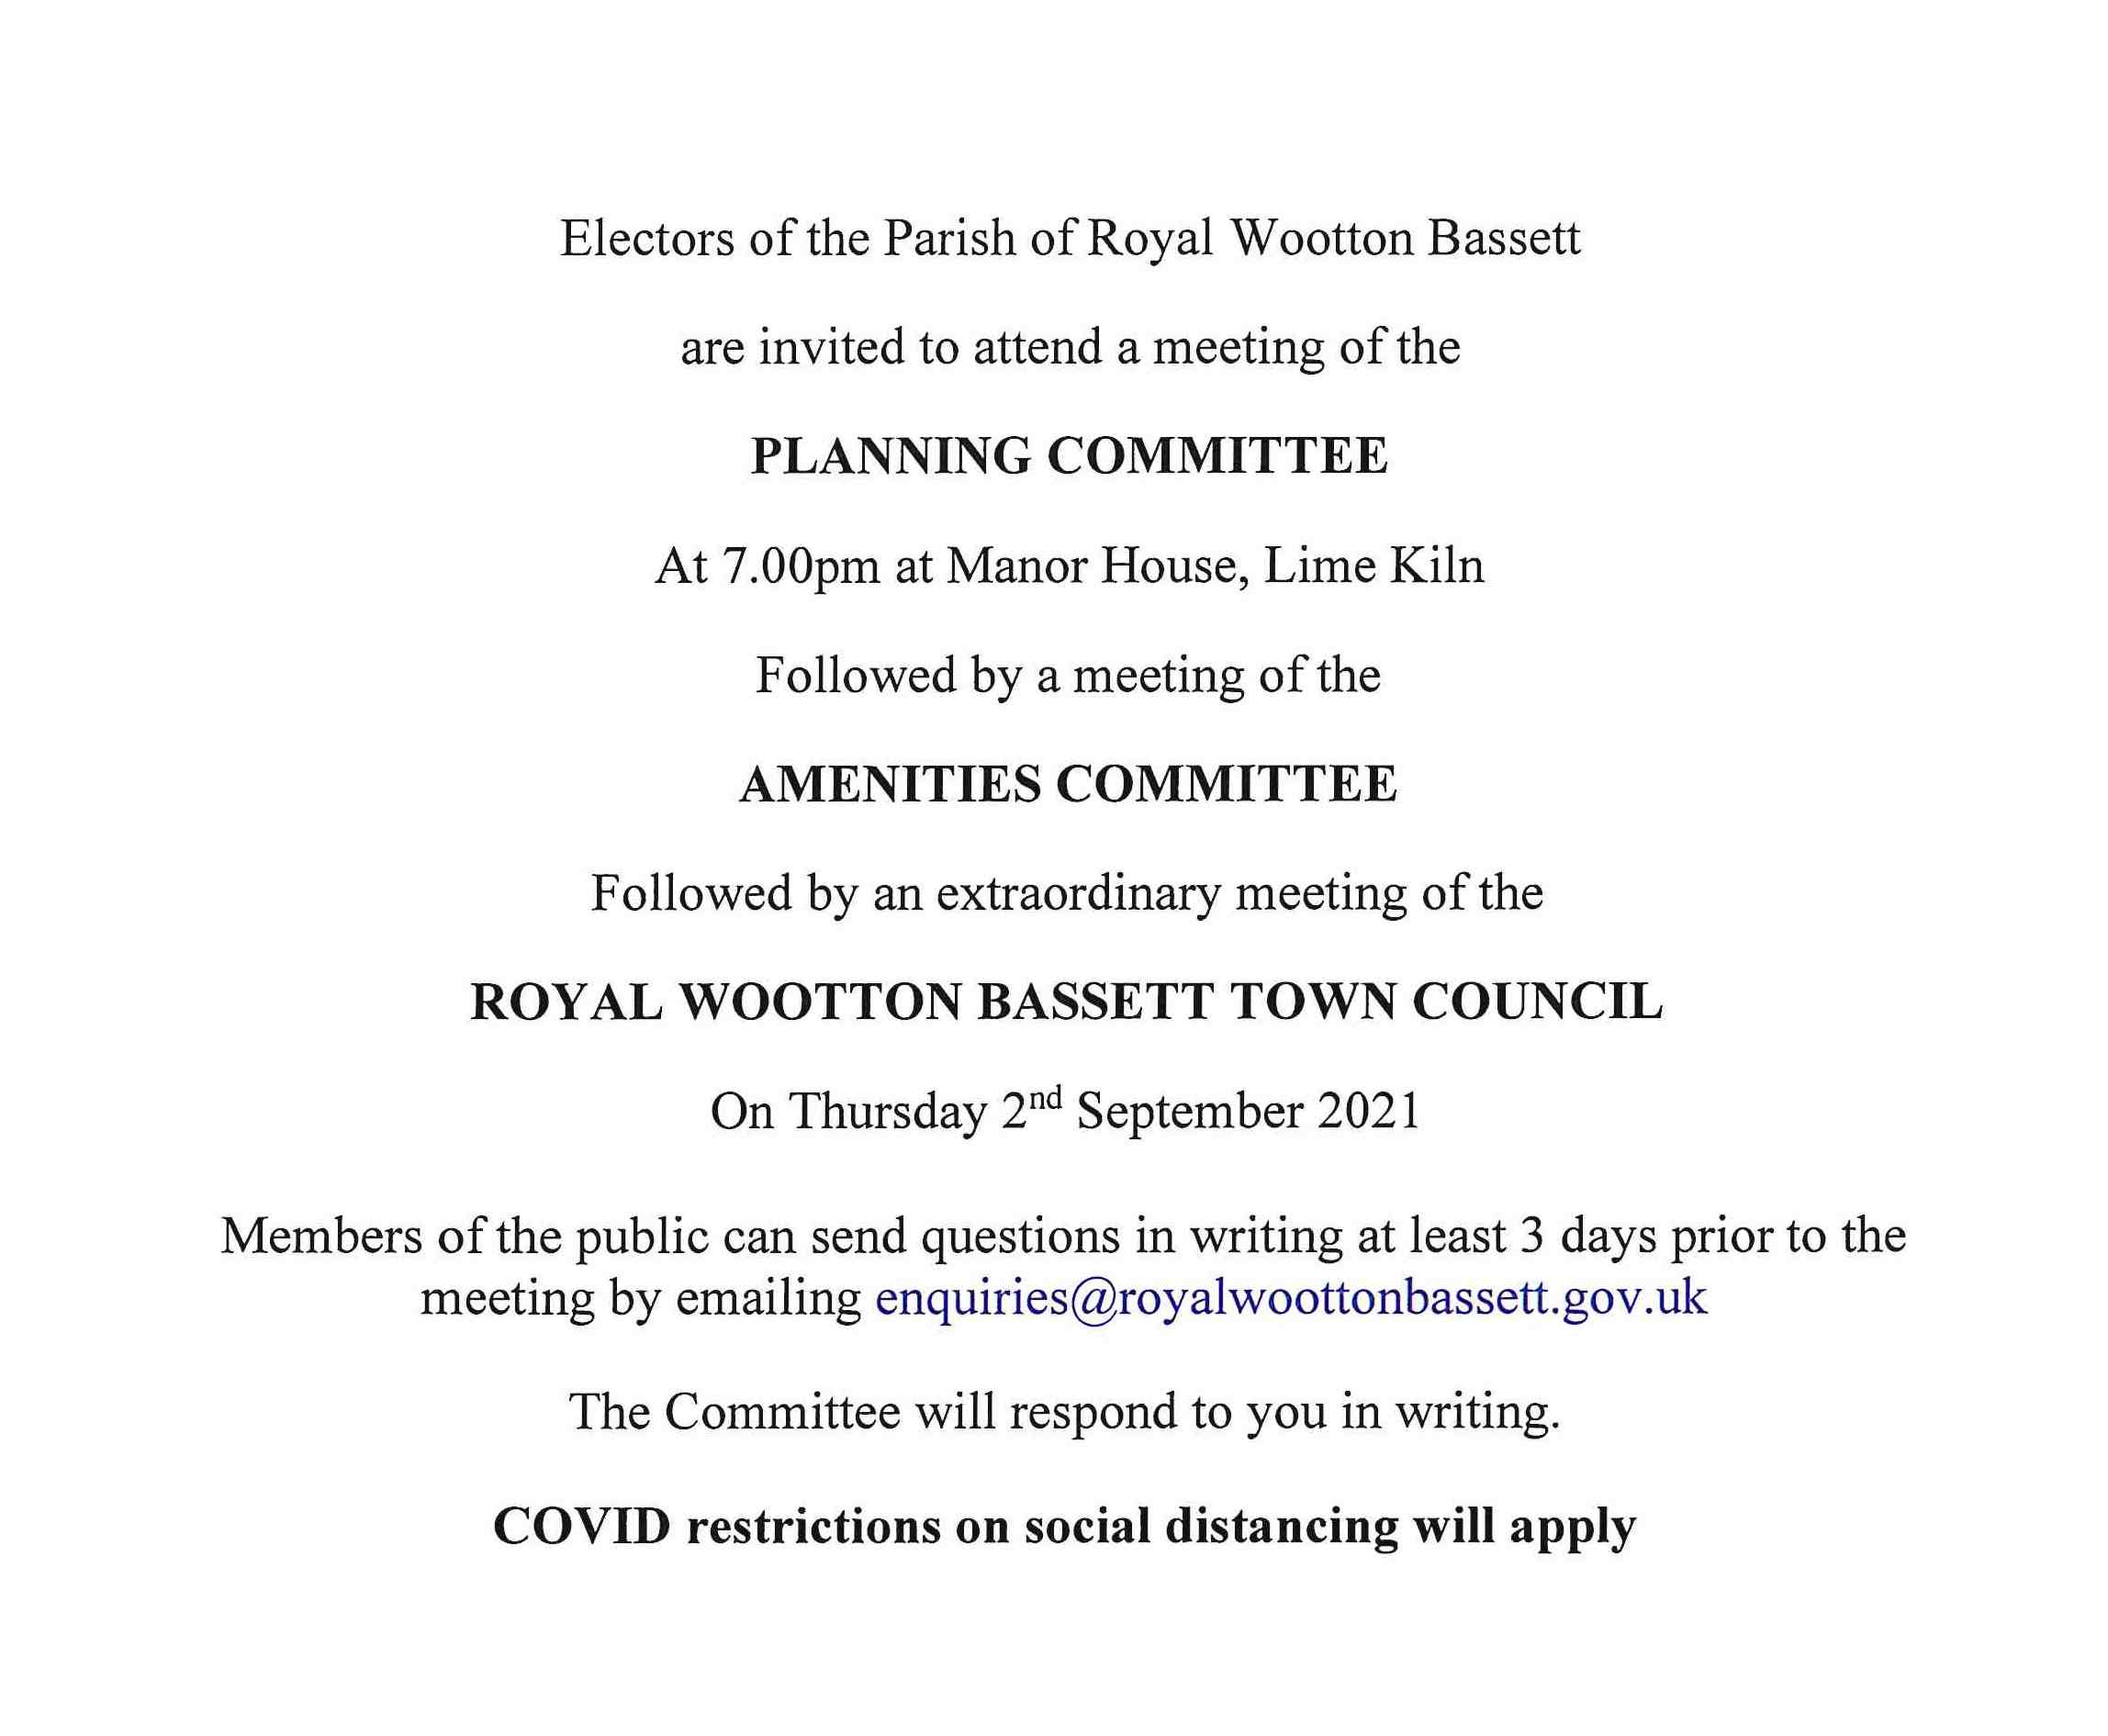 Town Council Meeting Notice for 2nd September 2021